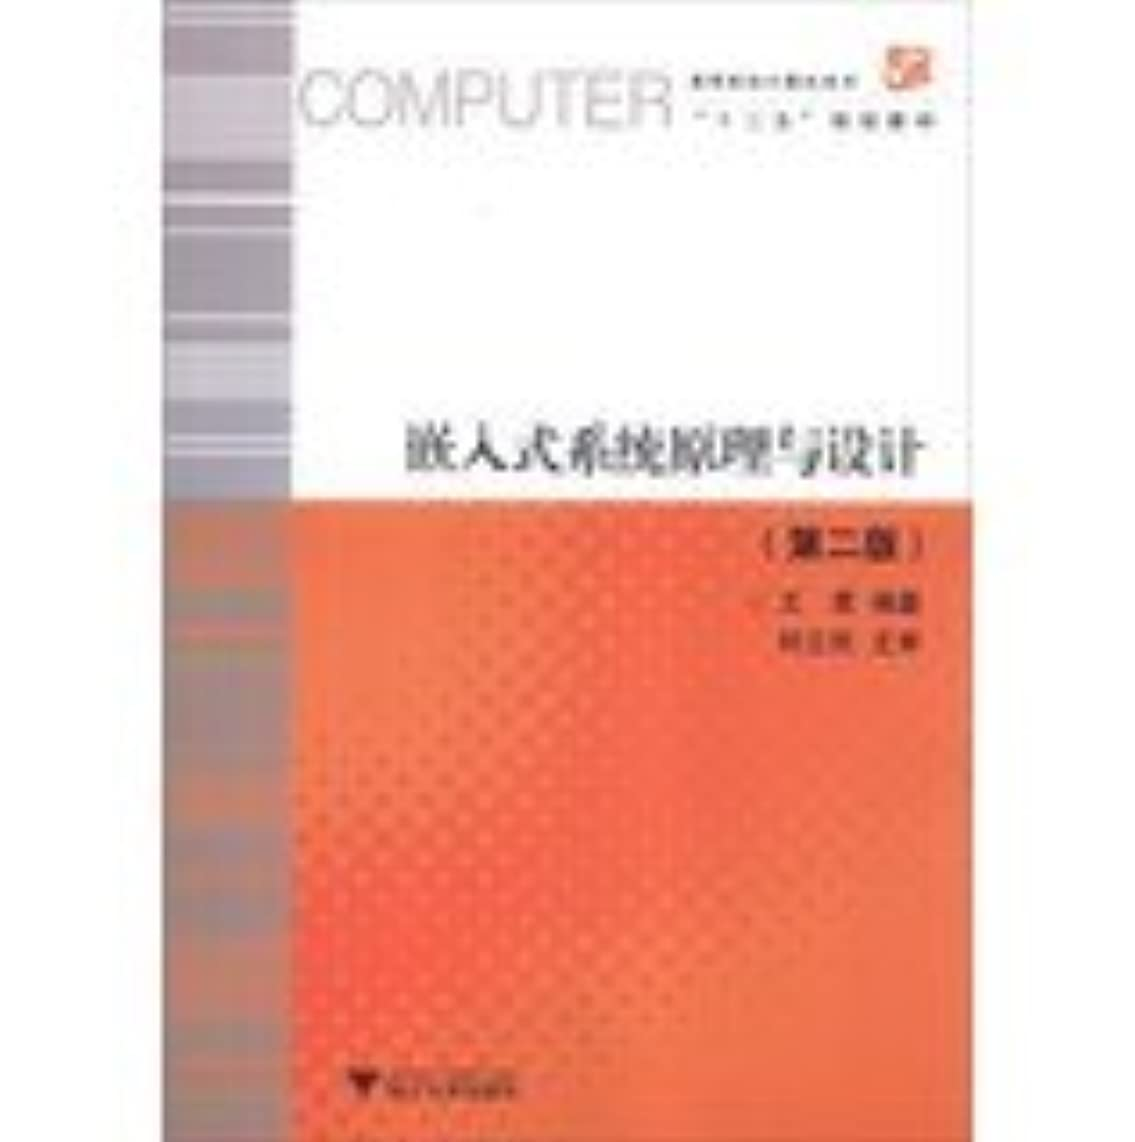 Embedded system theory and design ( 2nd edition ) institutions of higher learning computer technology second five planning materials(Chinese Edition)